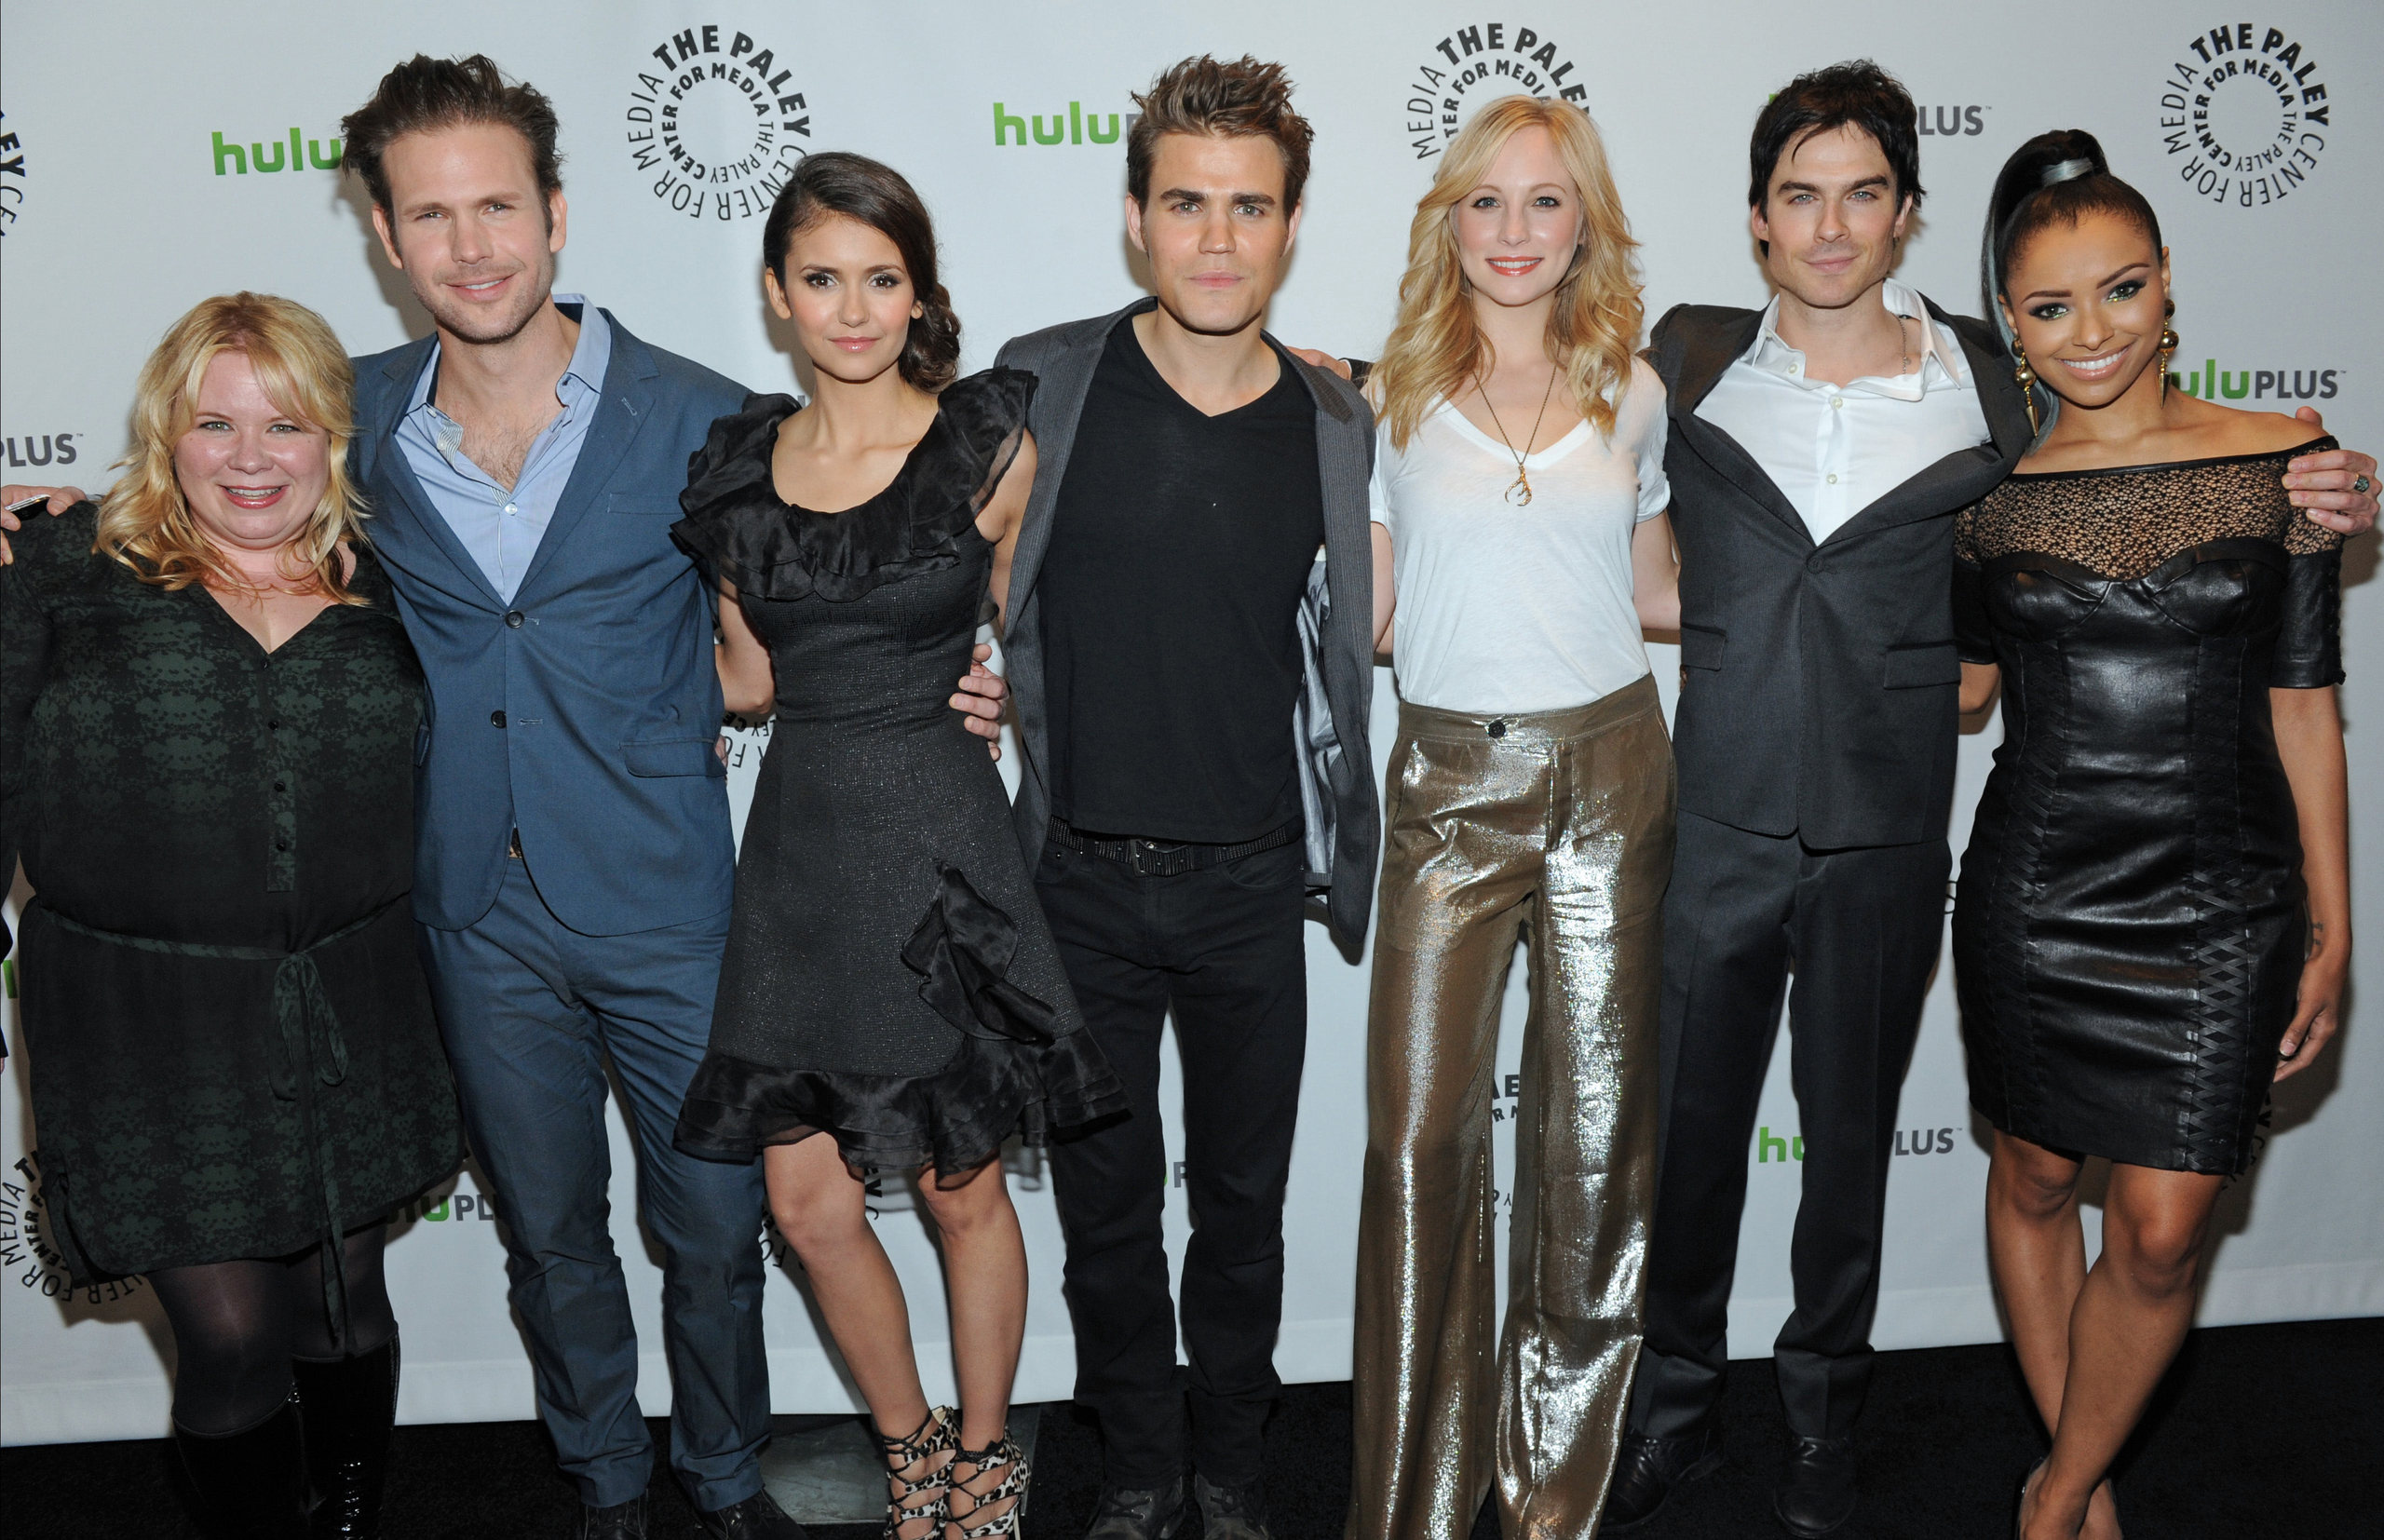 PaleyFest 2012 - The Vampire Diaries